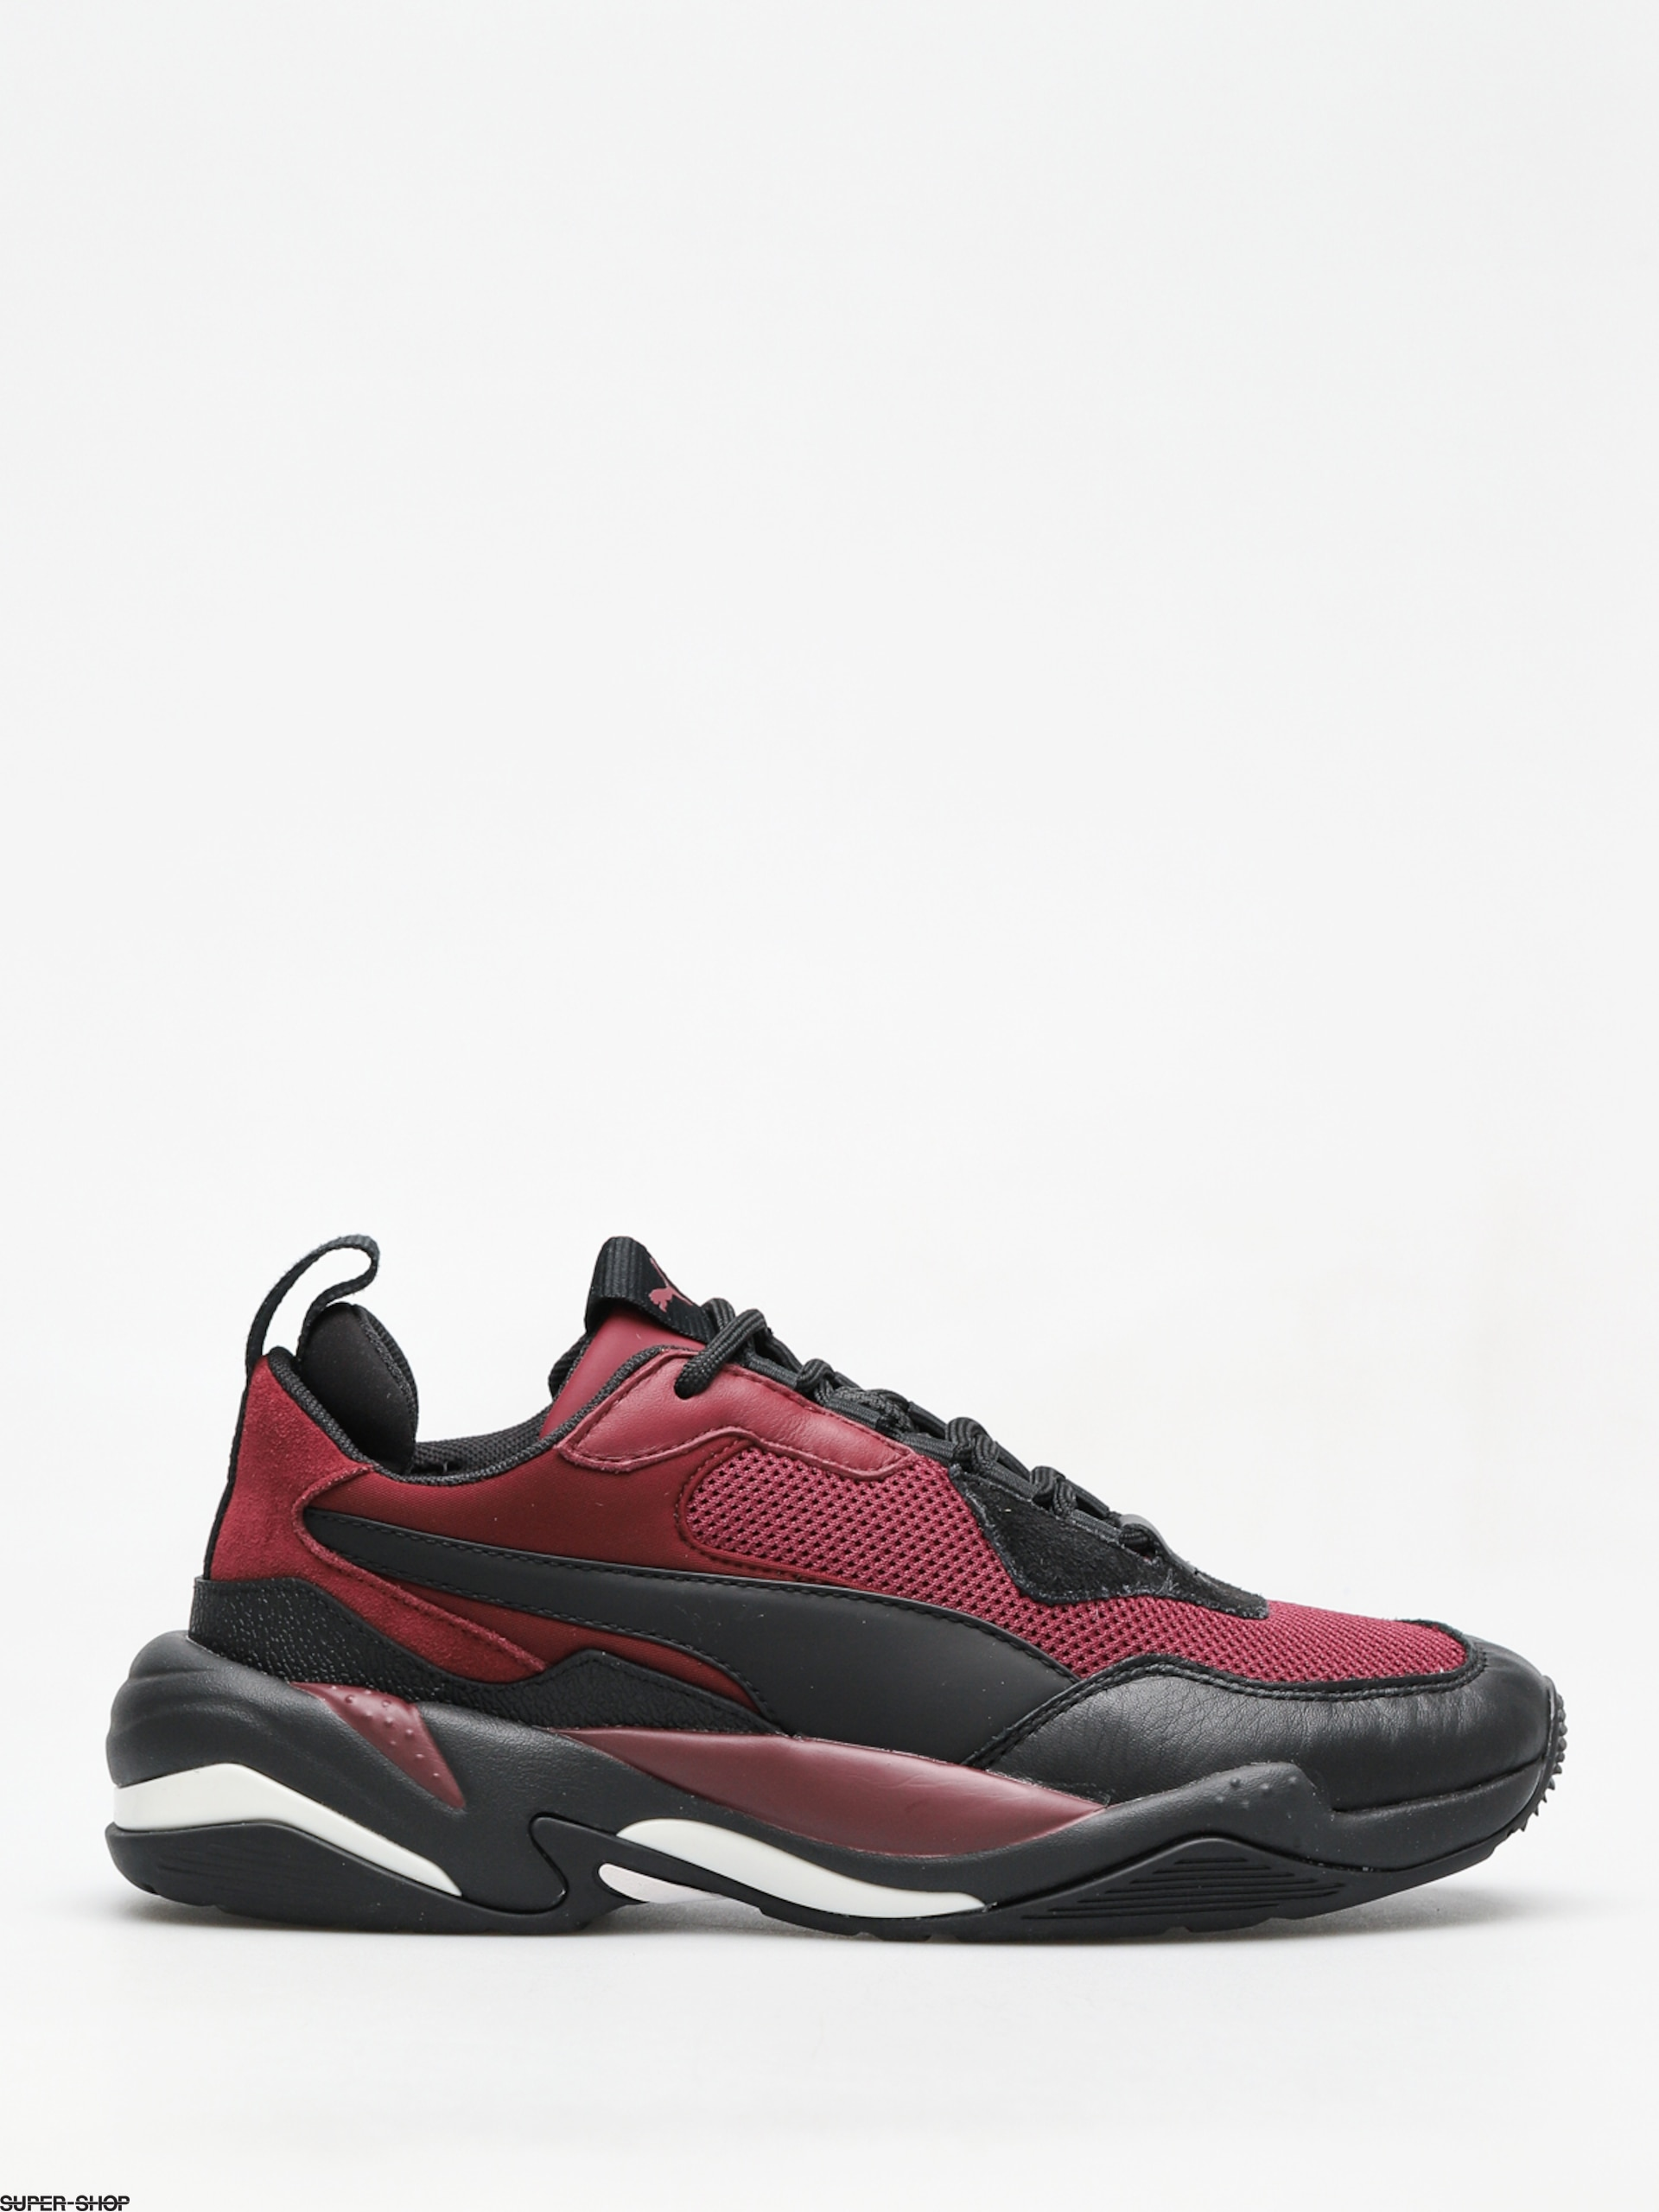 3cd891f8b54a Puma Thunder Spectra Sneaky sneakers in 2018 t